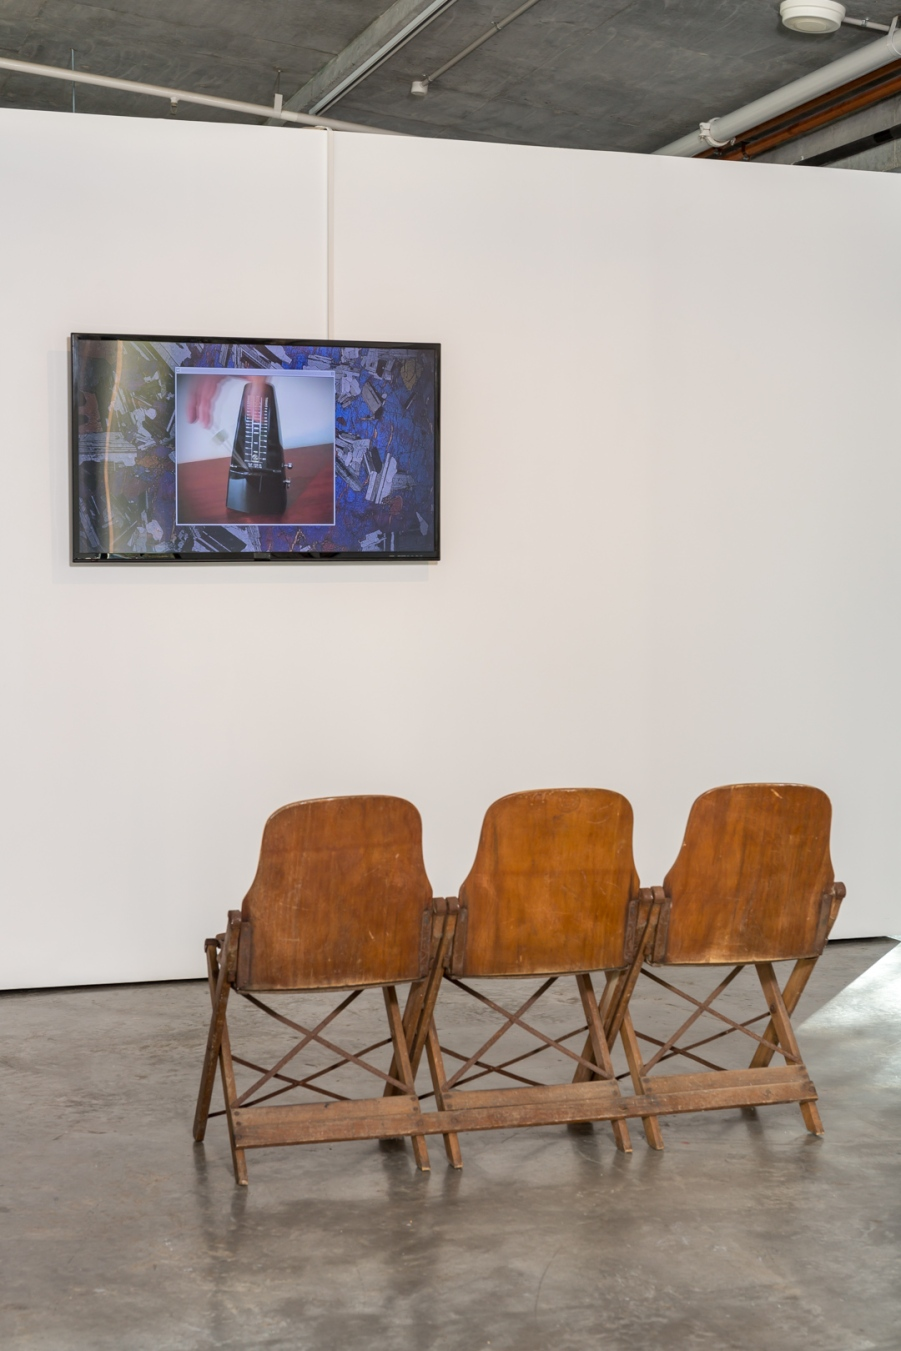 Aideen Doran, Oblomov's Dream, Digital video, 17.45 minutes, 2014-15. (Video still). Image by Document Photography.